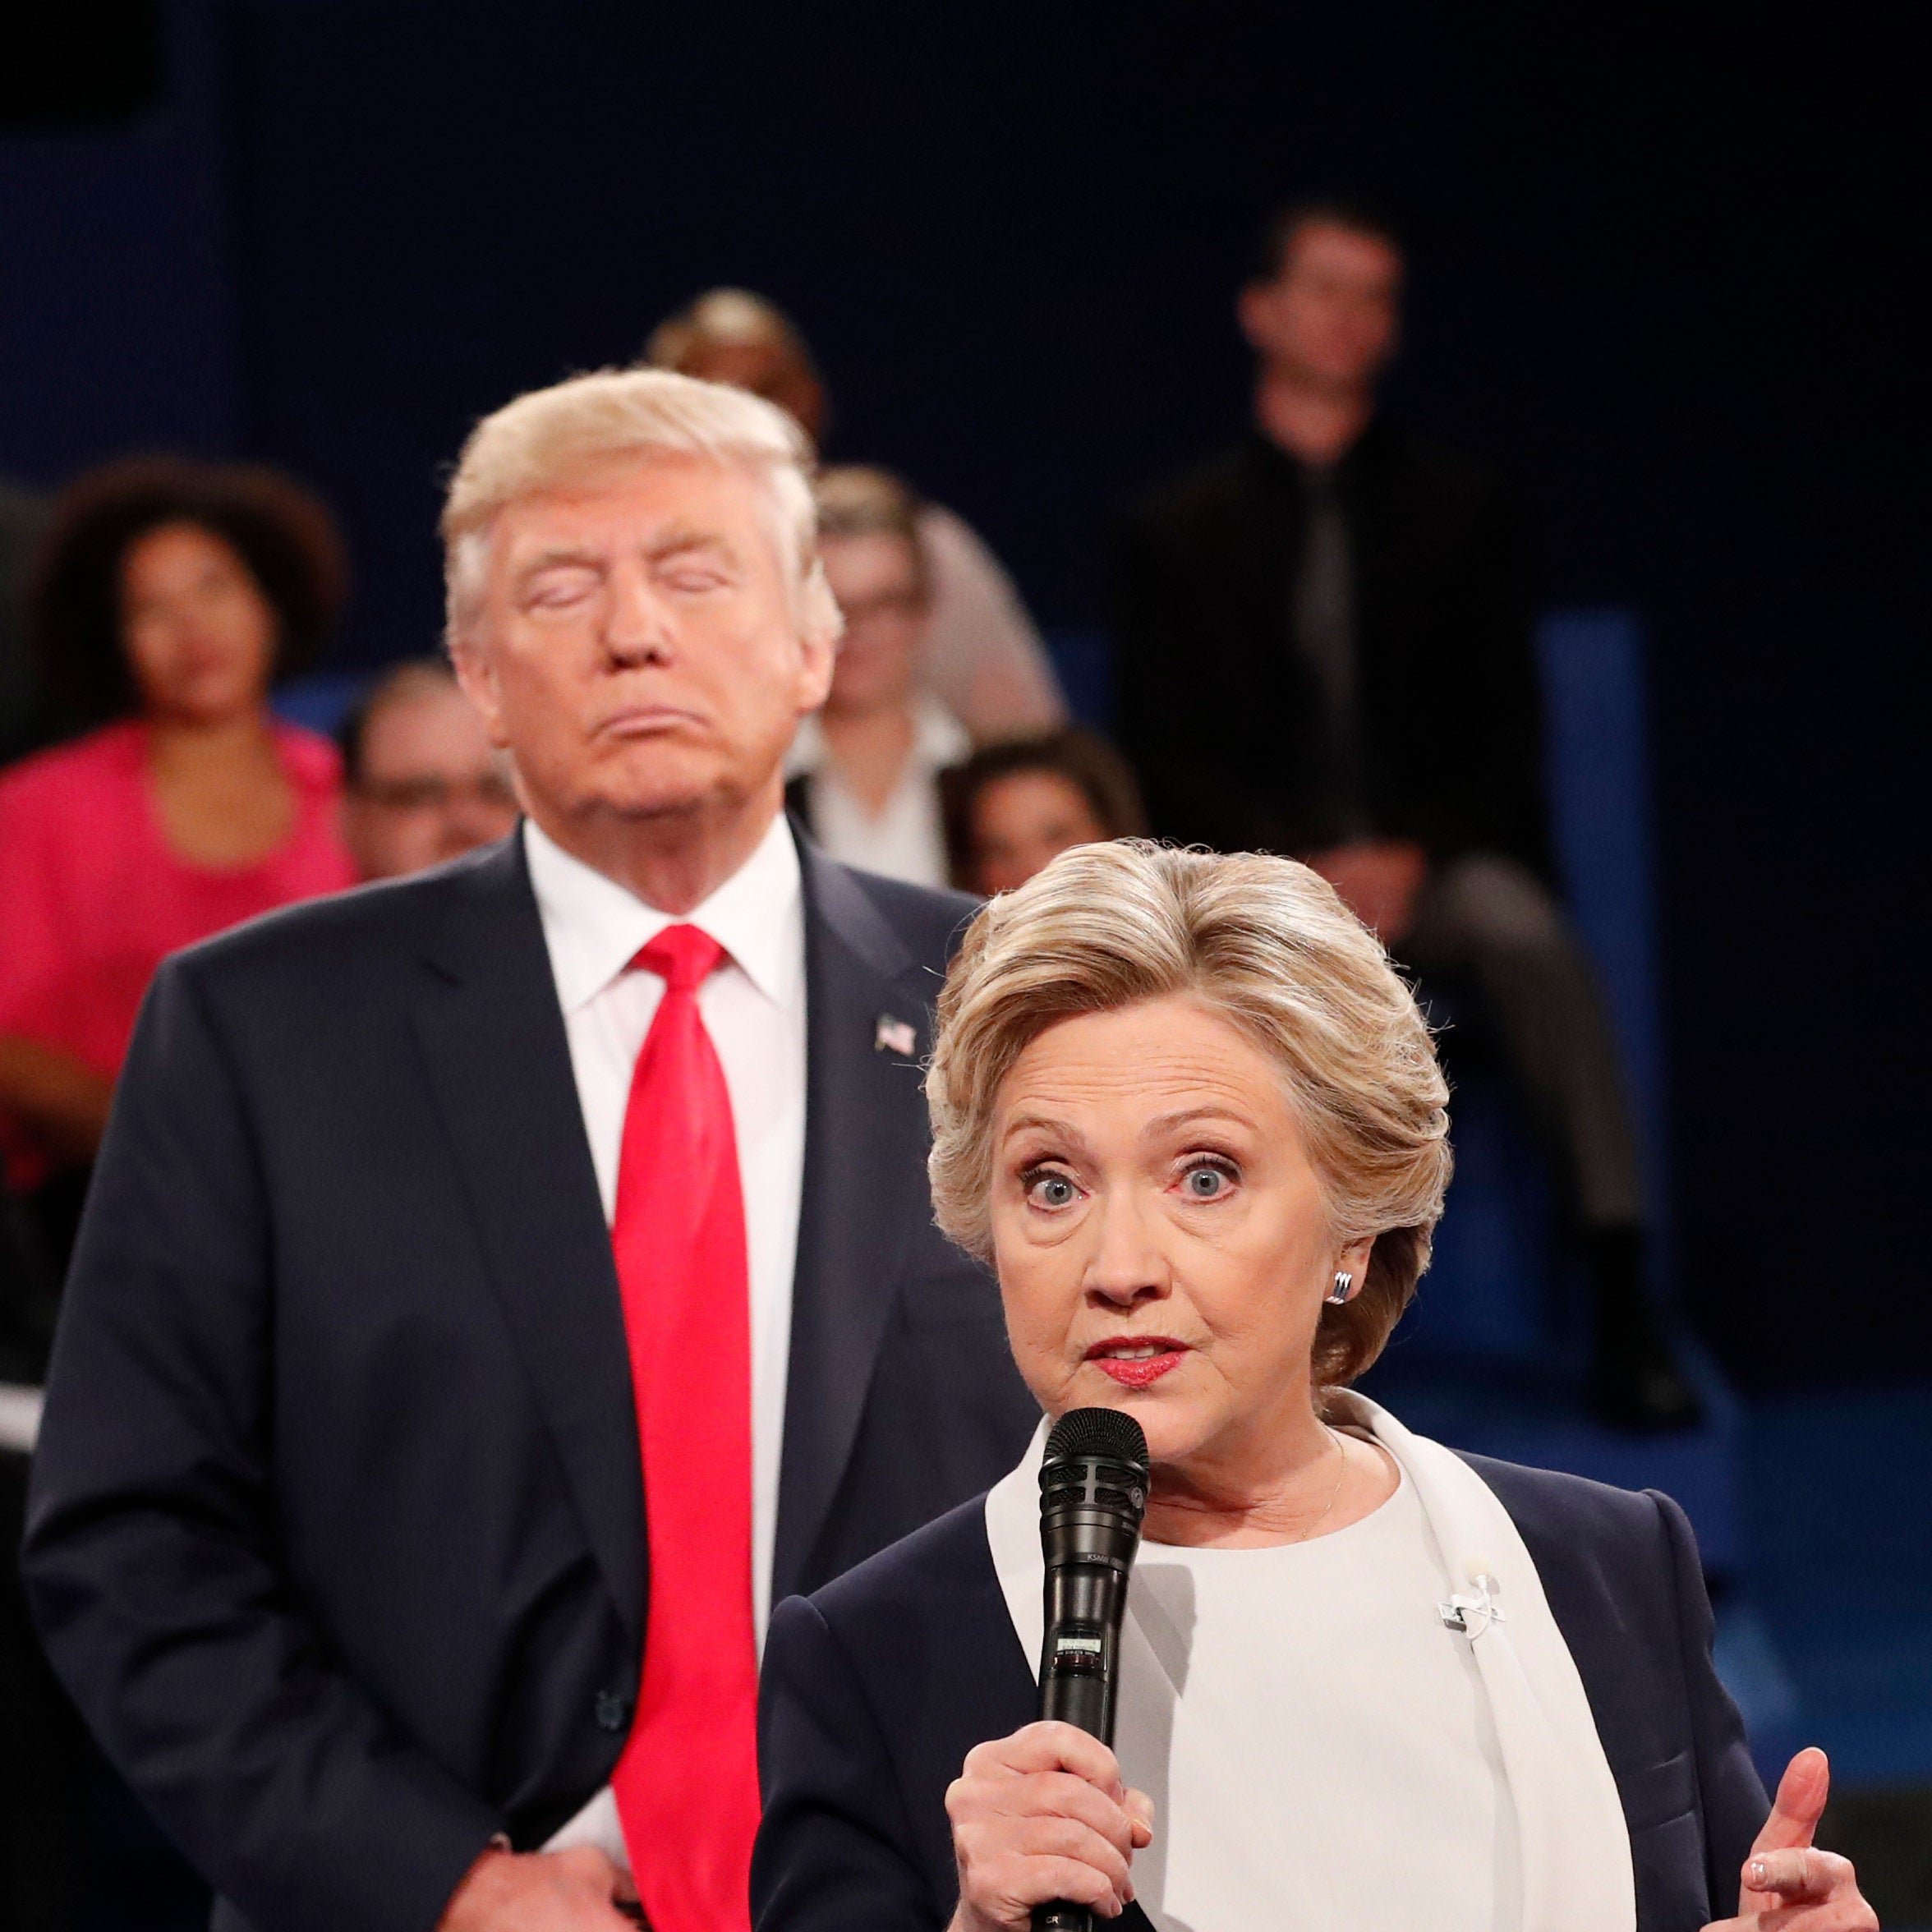 In Case You Missed It - Here's A Full Recap Of The Second Presidential Debate